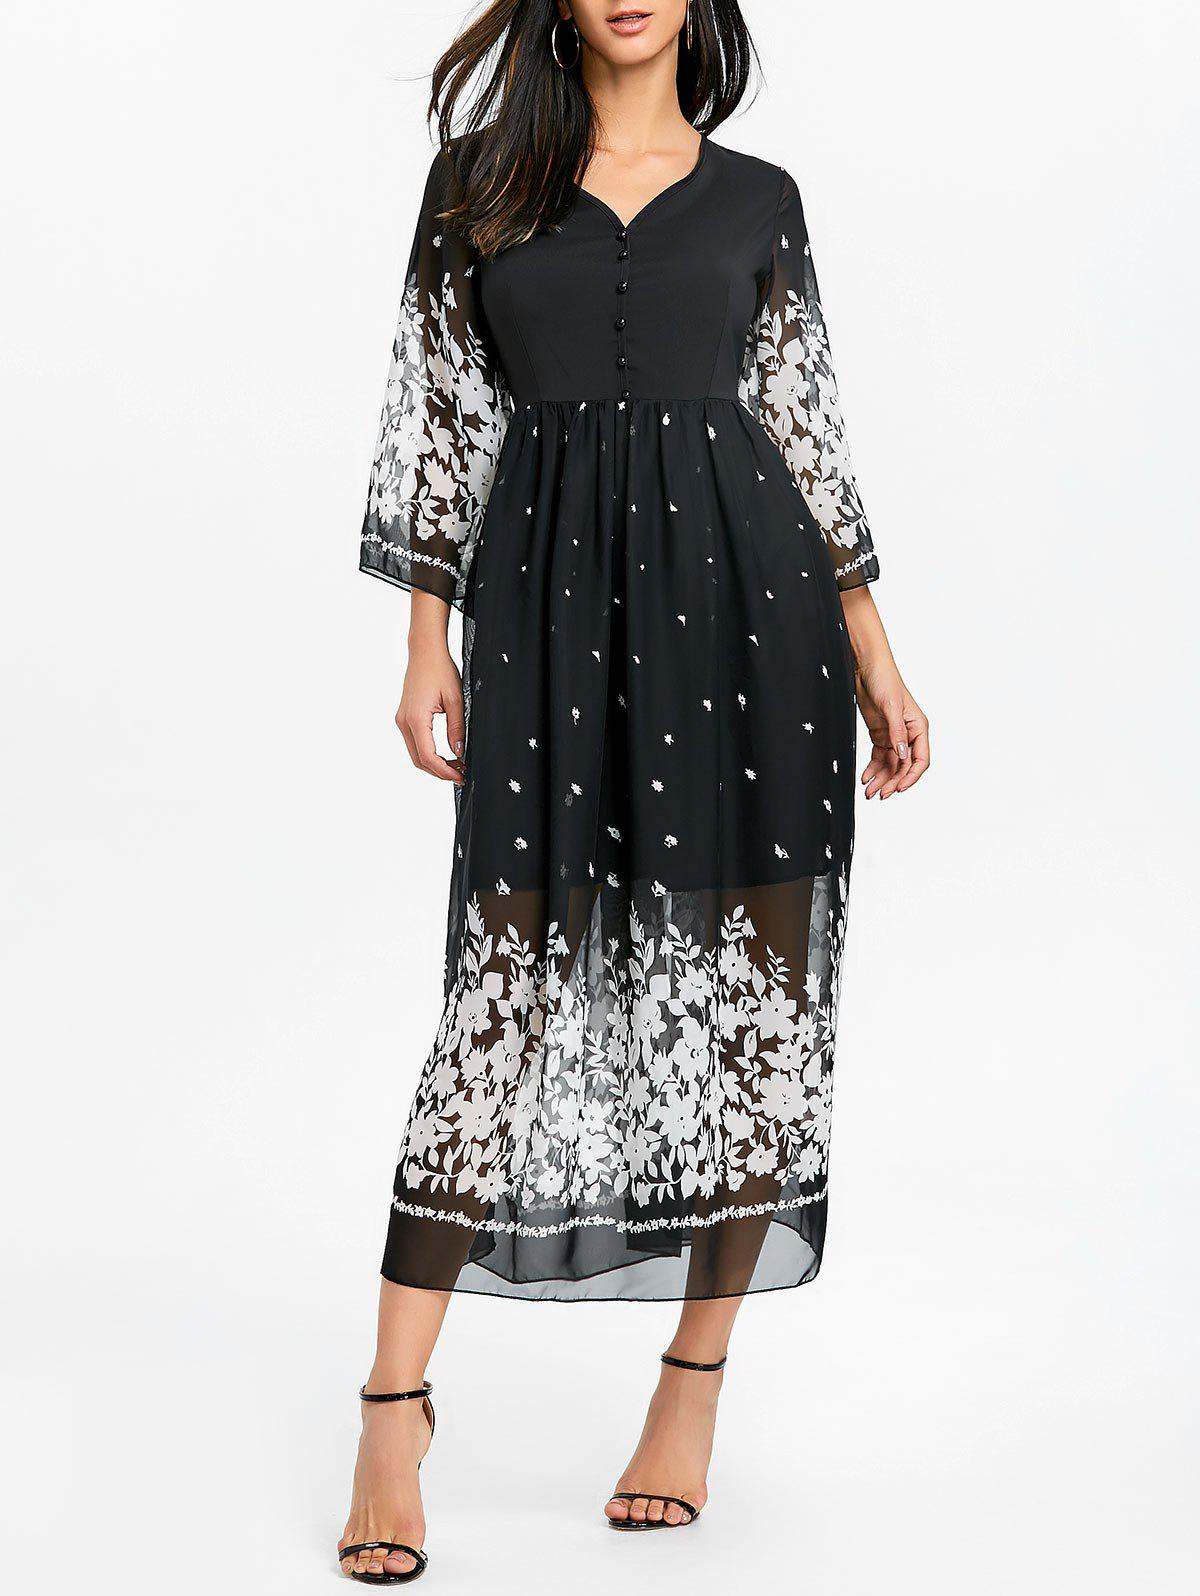 Bell Sleeve Floral Chiffon Midi Dress - BLACK S